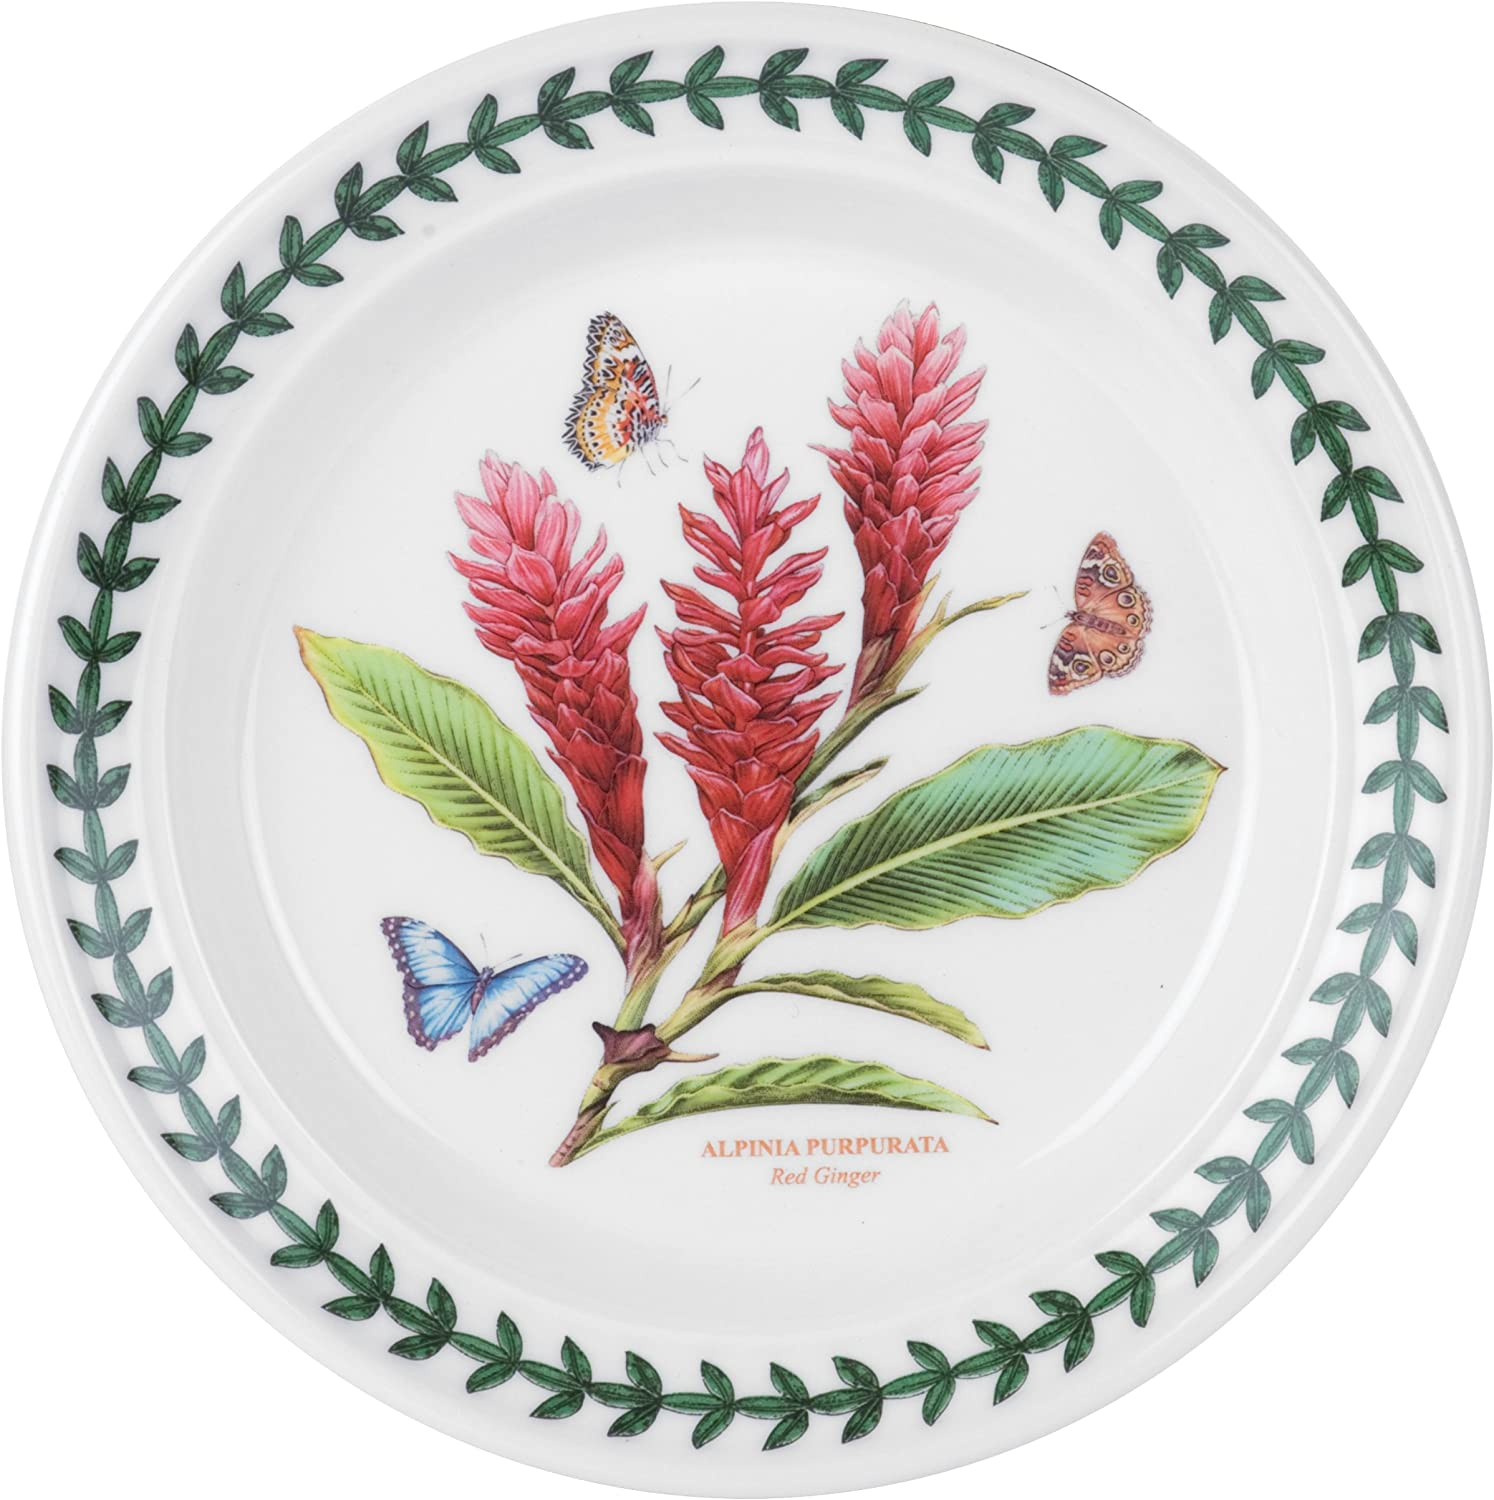 Portmeirion Exotic Botanic Garden Bread and Butter Plate with Red Ginger Motif